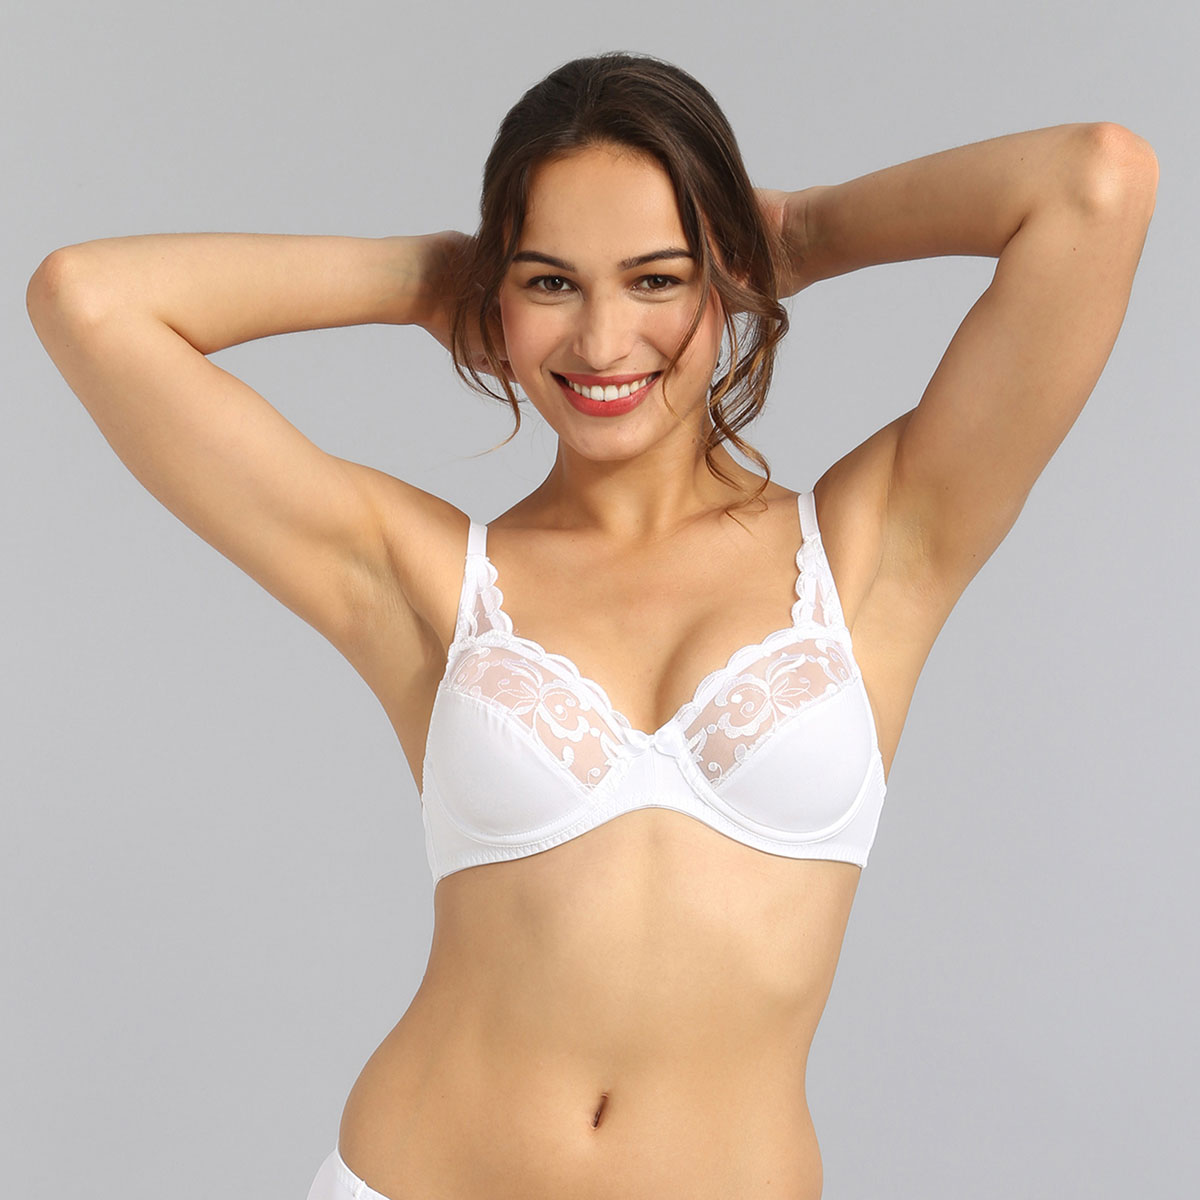 Underwired bra in white Essential Elegance Embroidery, , PLAYTEX